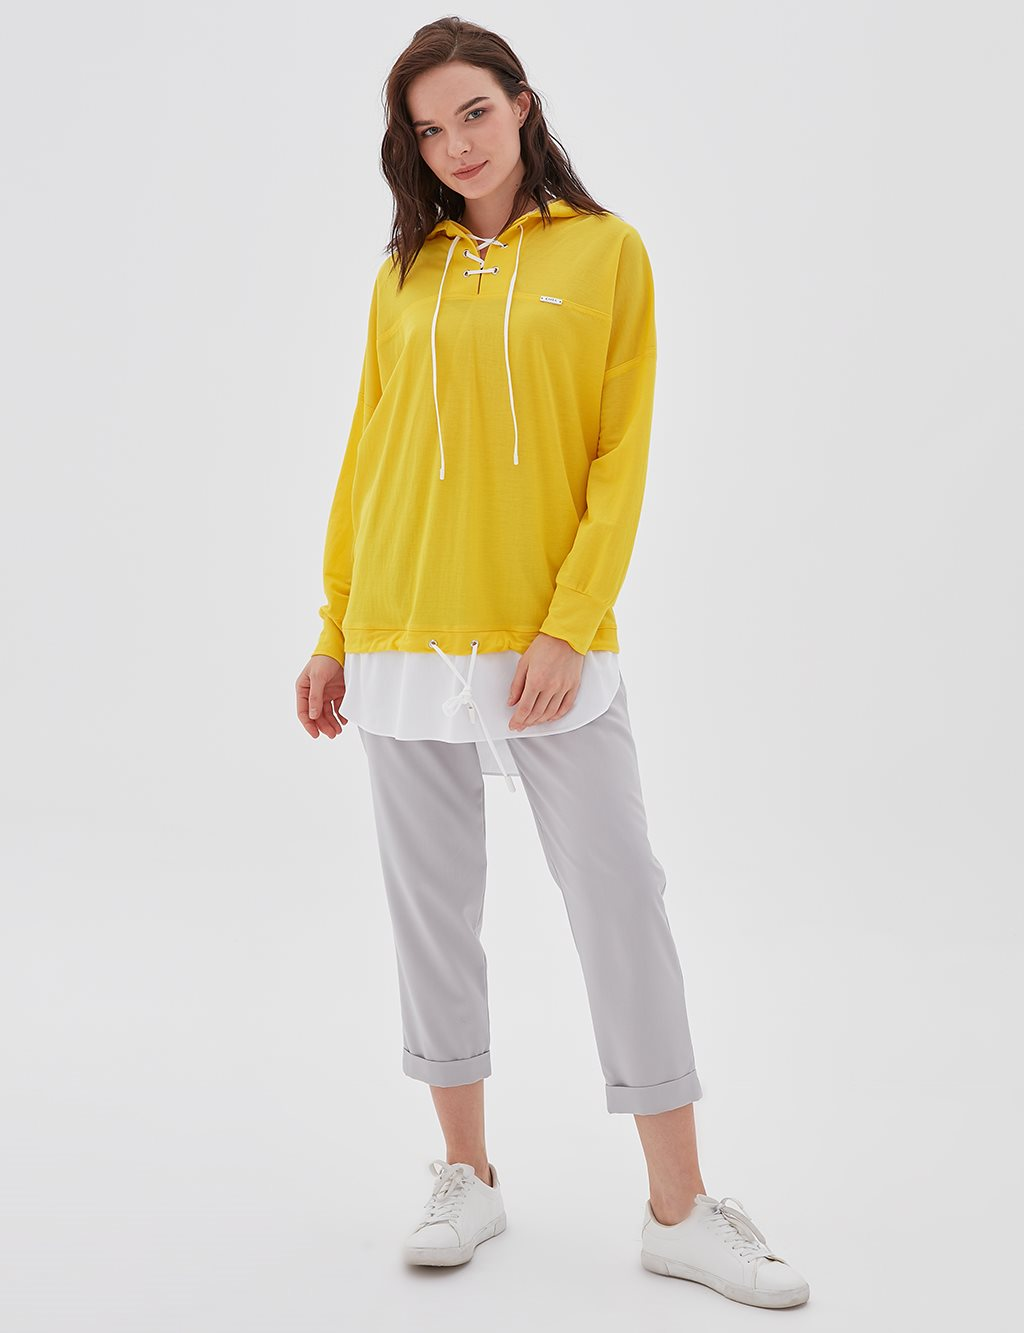 Double Pieced Sweatshirt B20 21100 Yellow